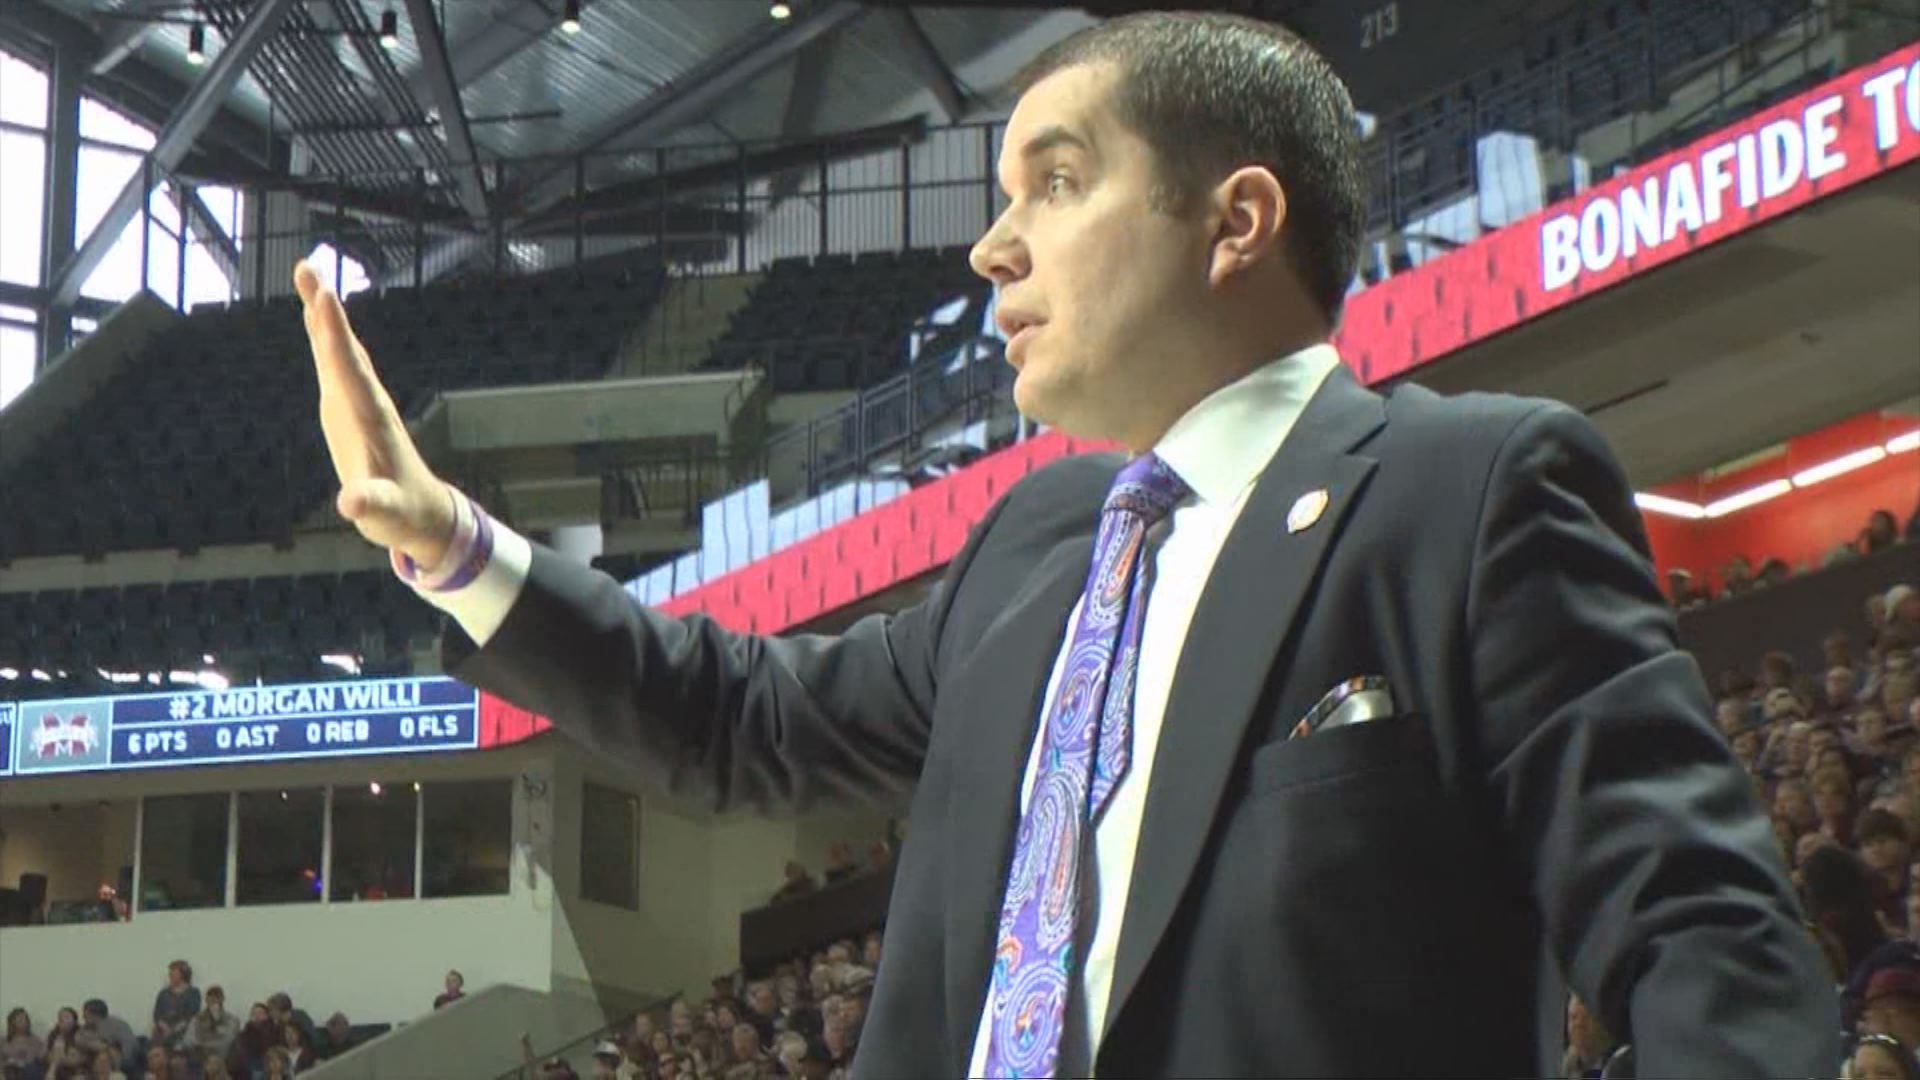 INSELL GONE WEB PIC